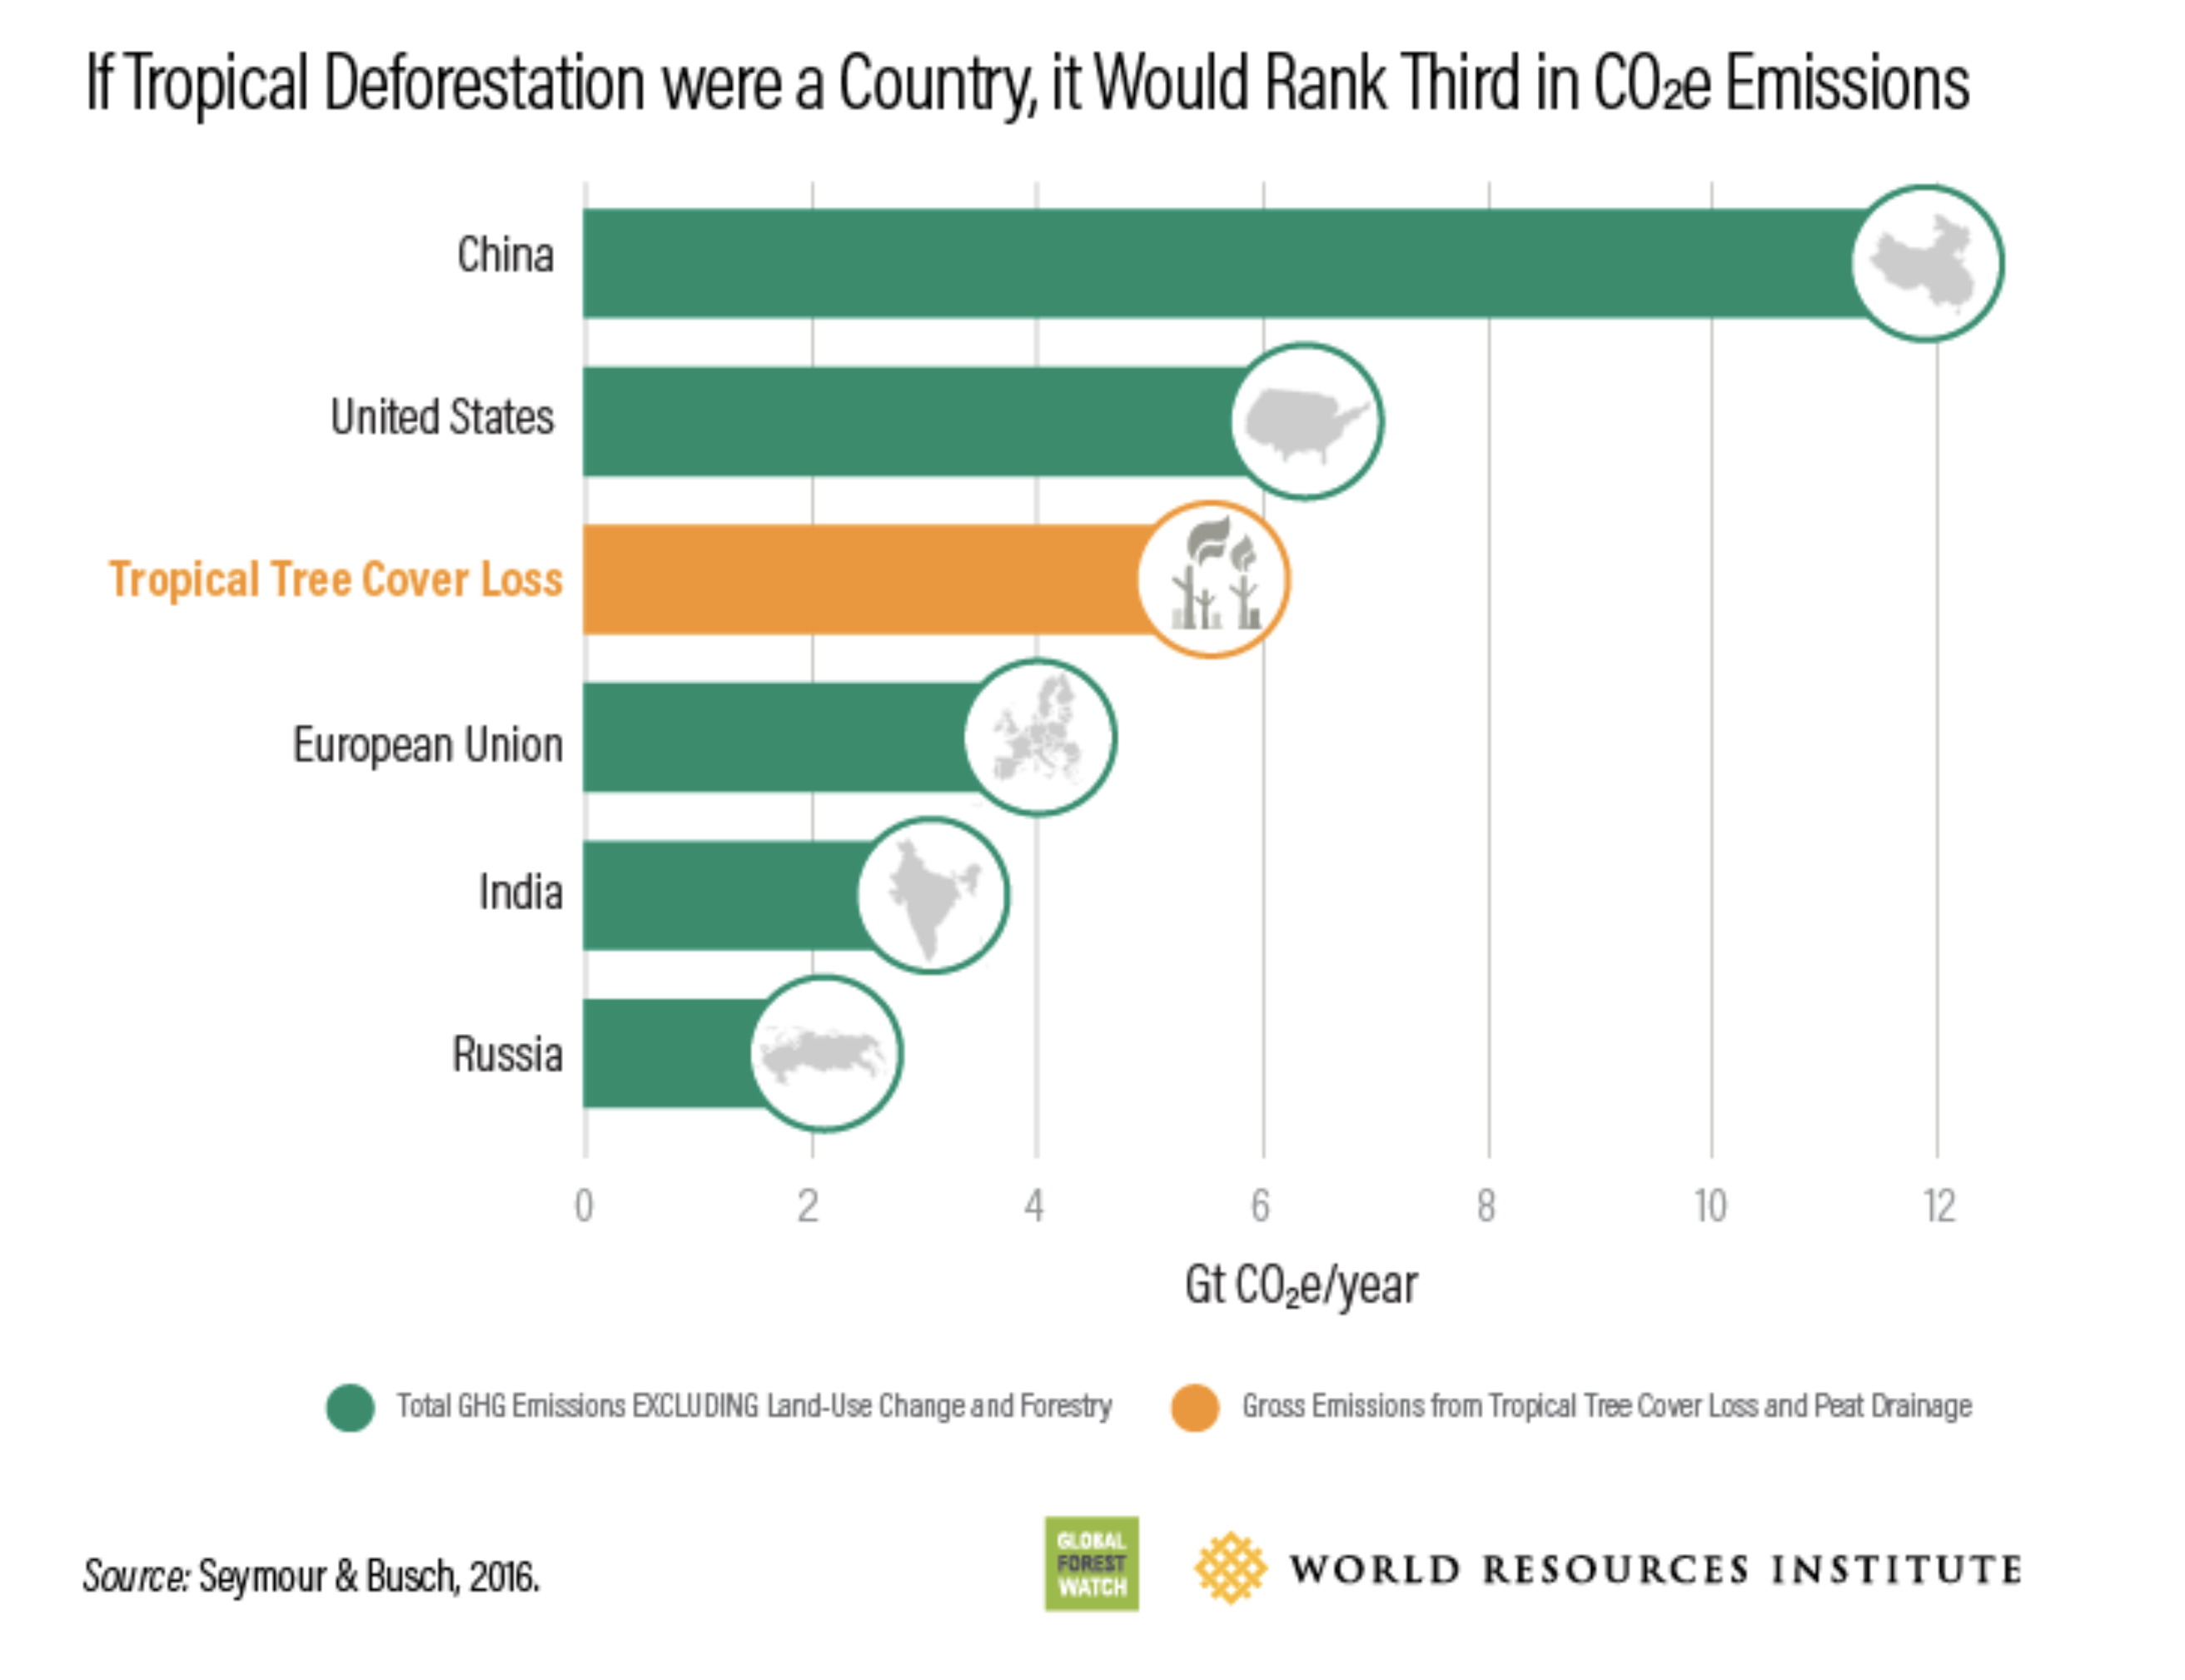 Tropical deforestation is a bigger contributor to climate change than the EU or India